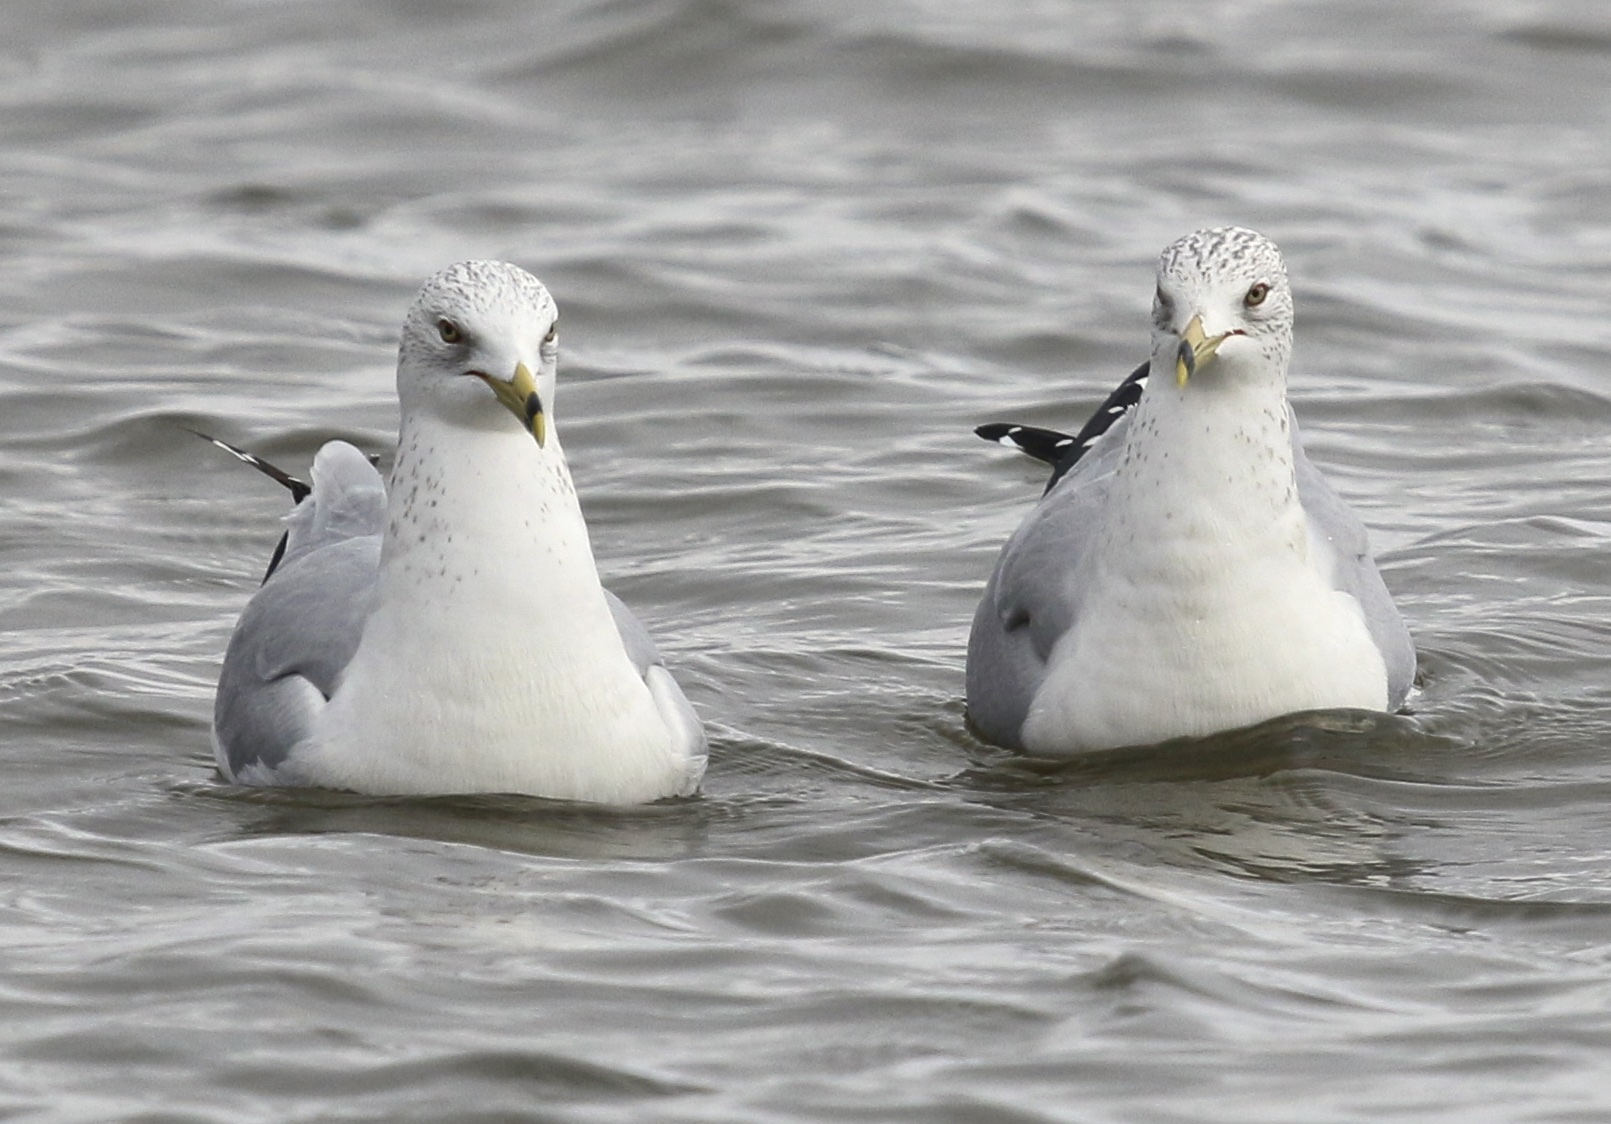 ~Don't mess with these two, they look like they are in a mood. Ring-billed Gulls at Piermont Pier 1/9/16.~